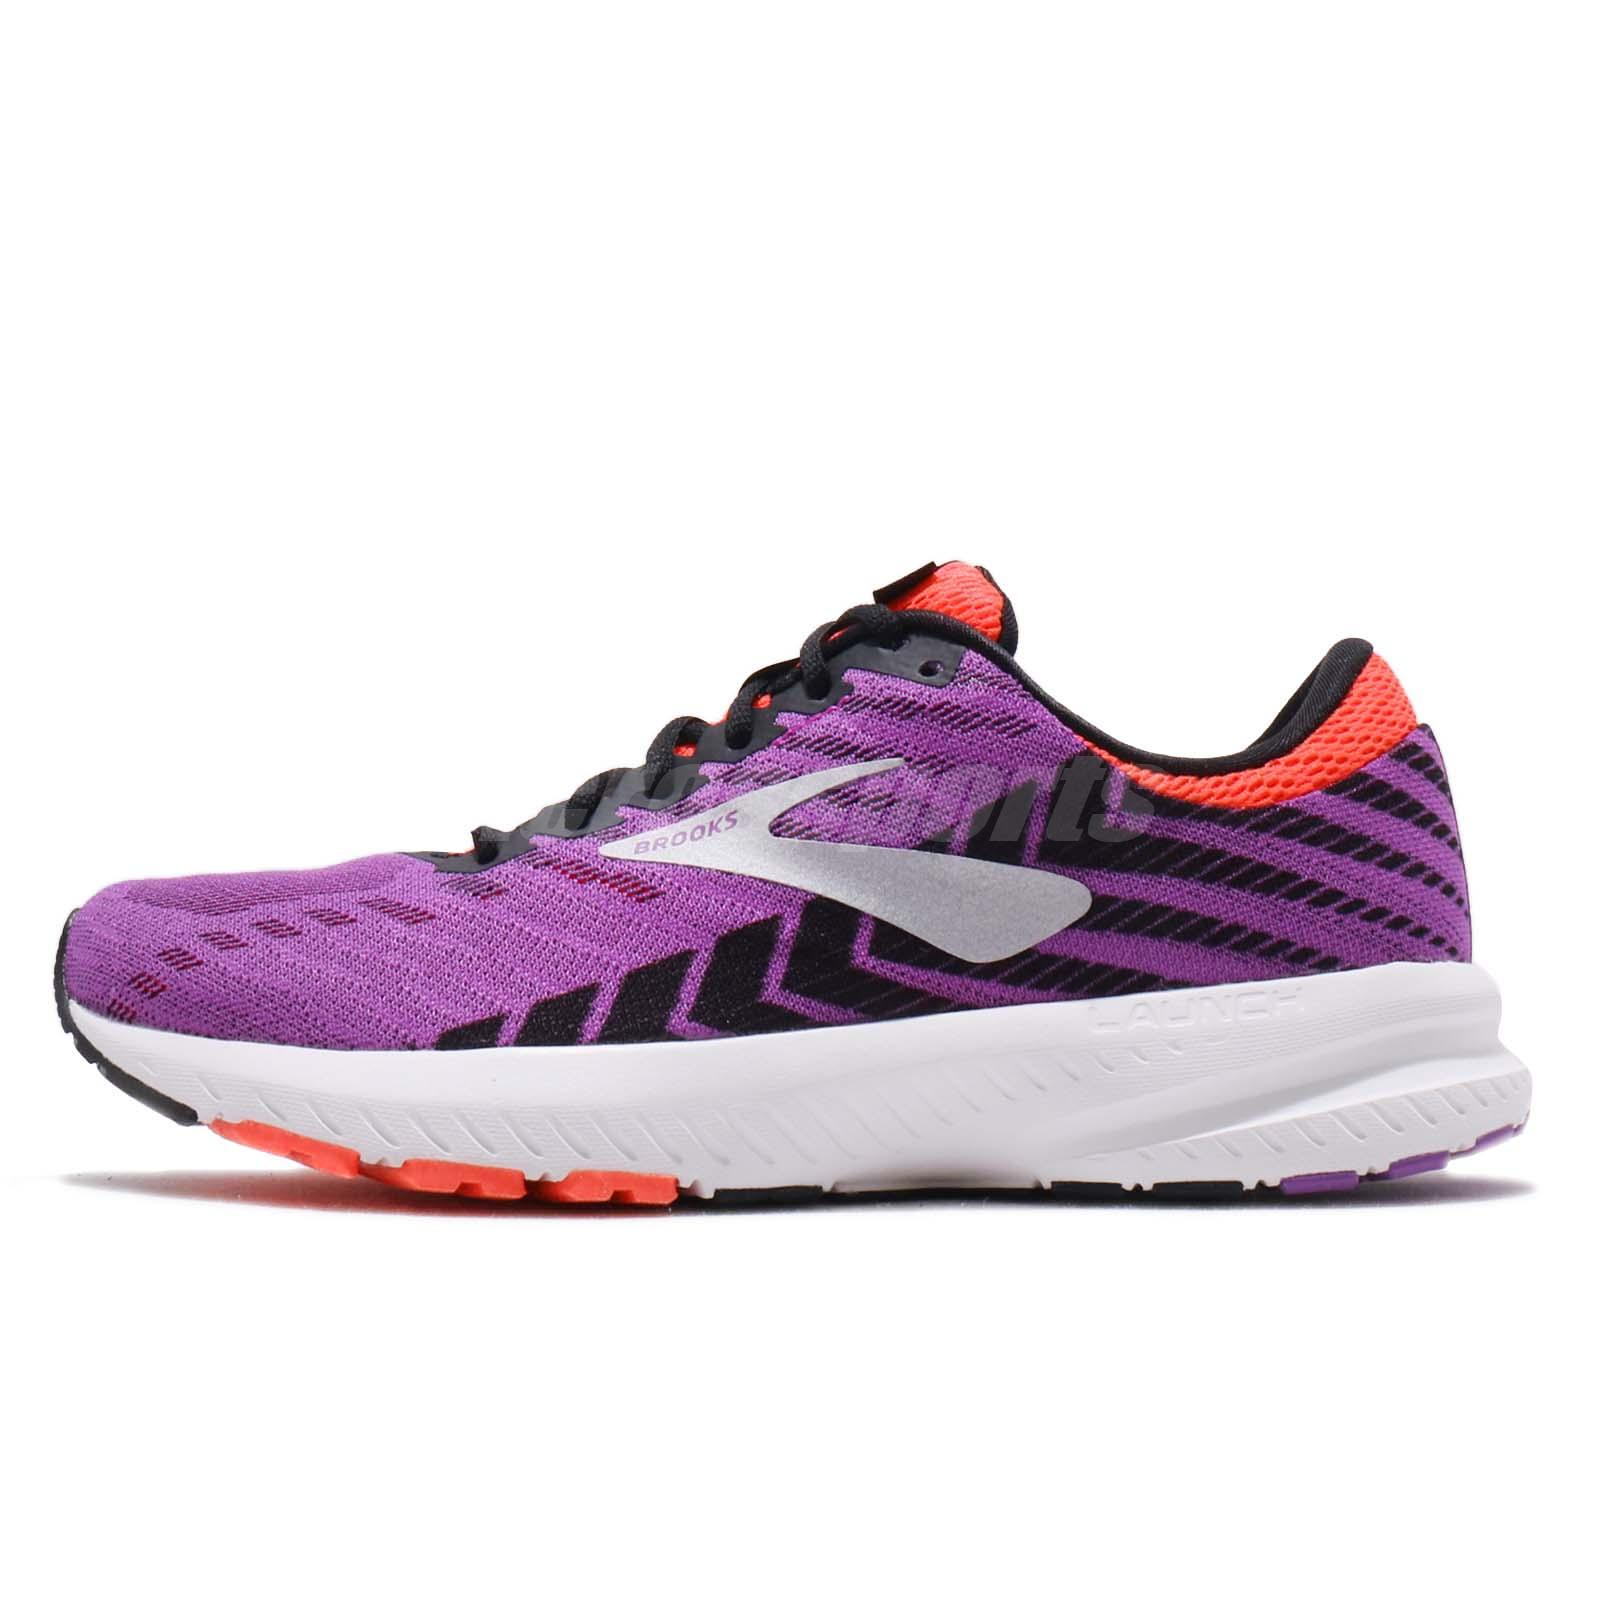 29a12ffa7c688 Brooks Launch 6 Purple Black Coral White Women Running Shoes Sneakers  120285 1B